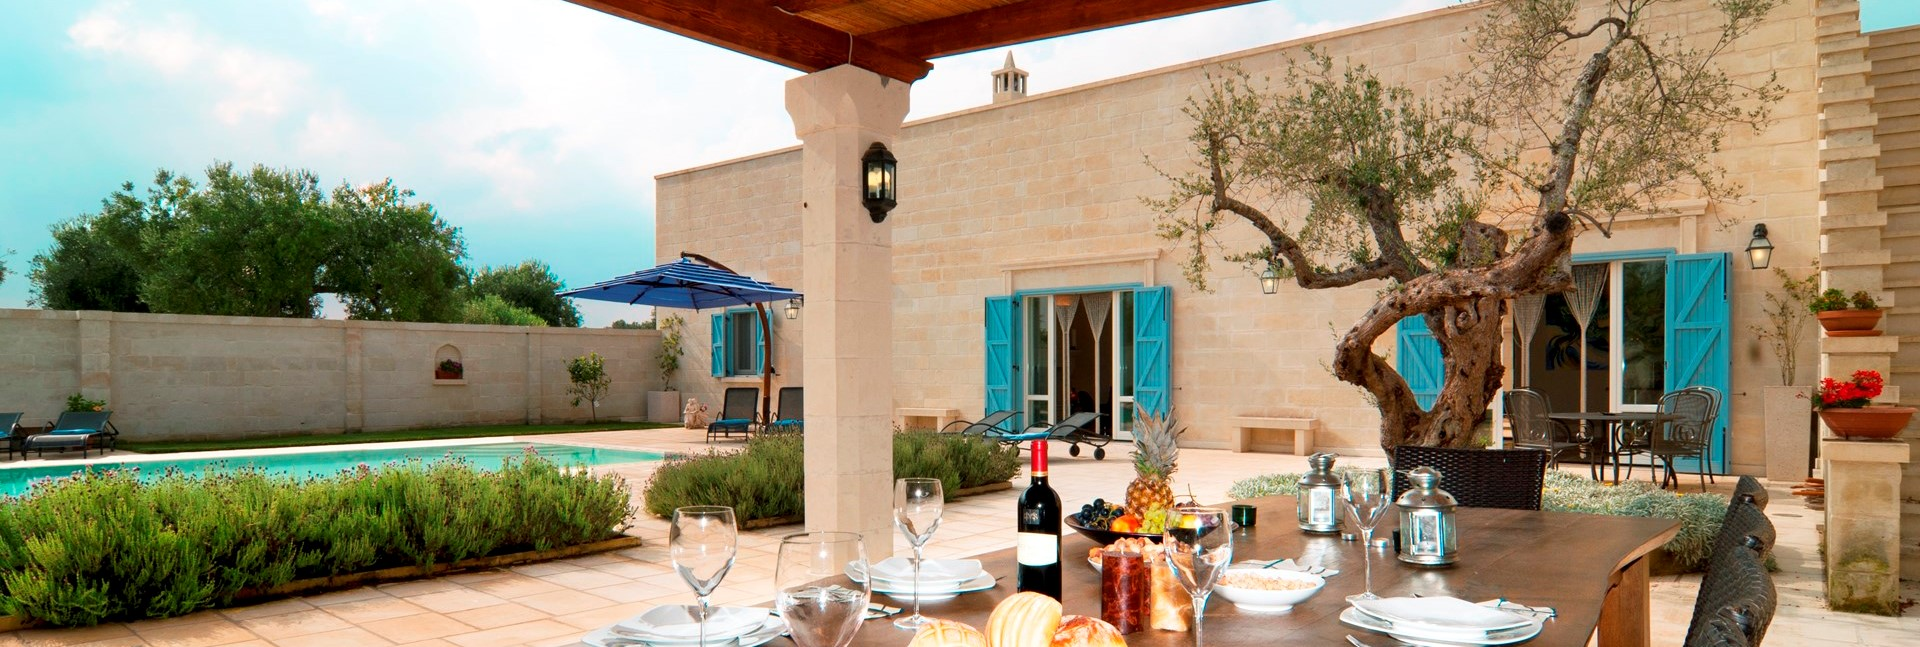 masseria-salentina-al-fresco-dining